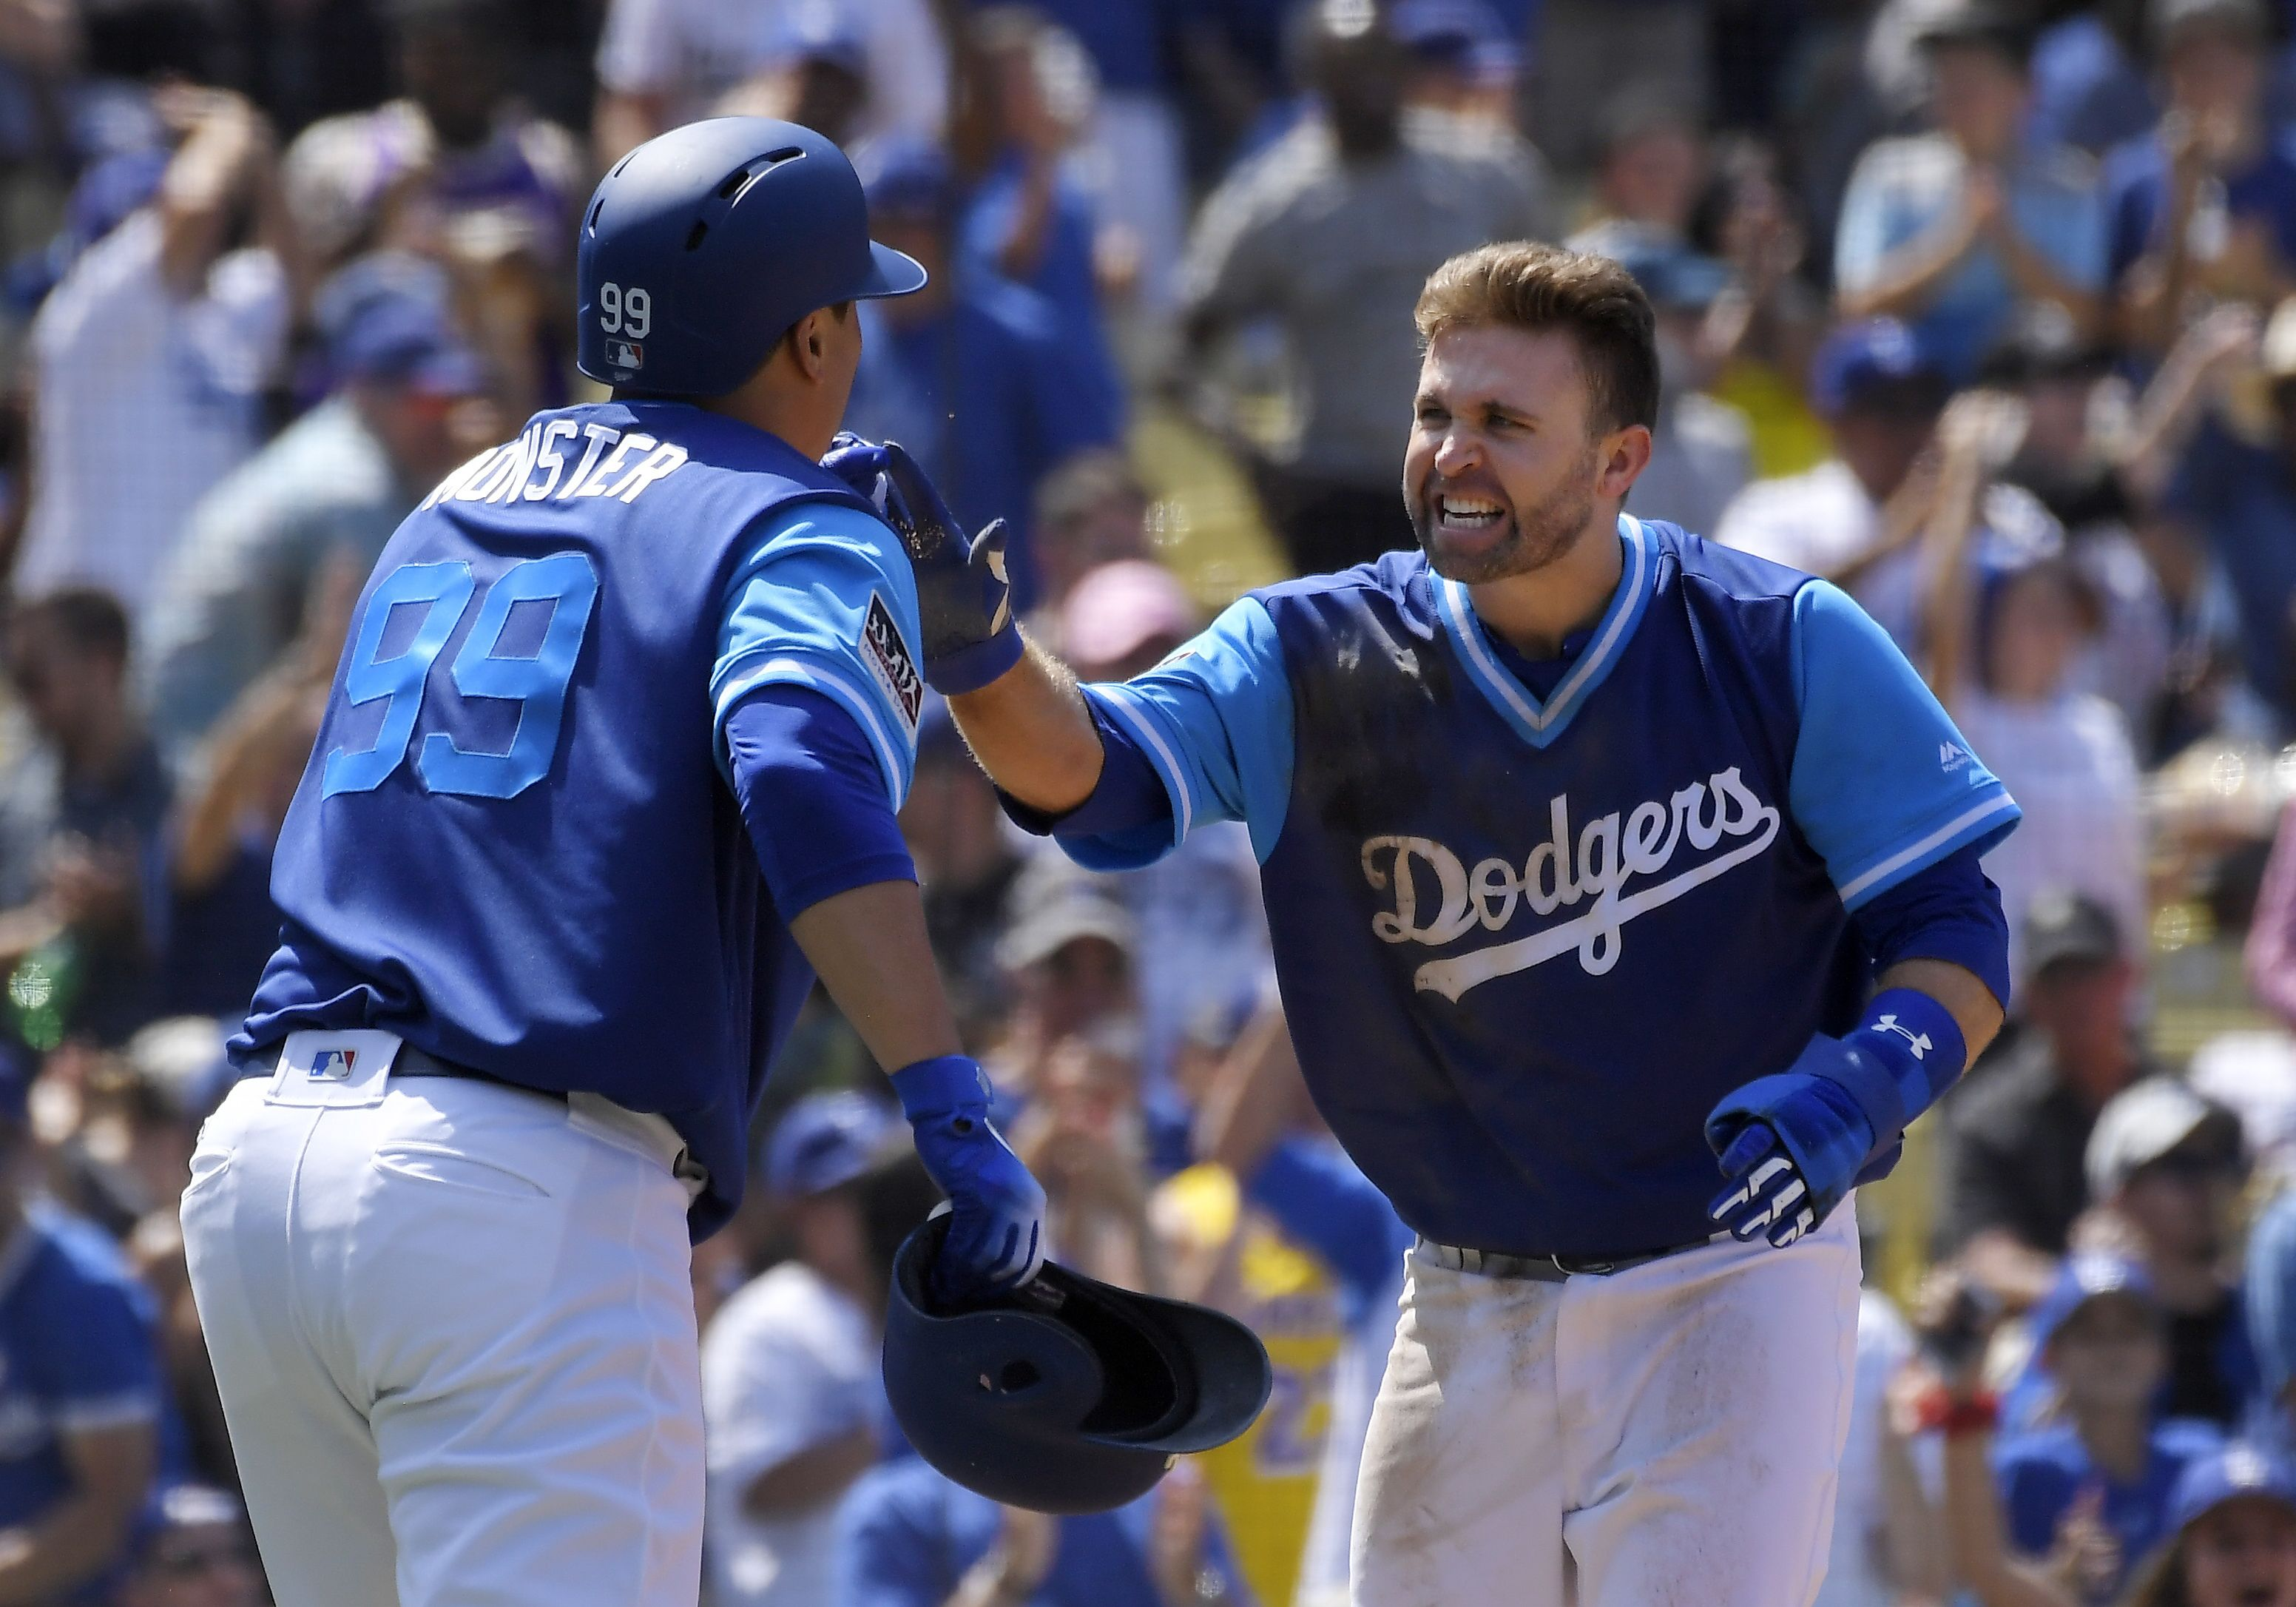 Justin Turner Drives In Five Runs To Power Dodgers Past Padres Https Ift Tt 2wodbc7 Dodgers Justin Turner Padres